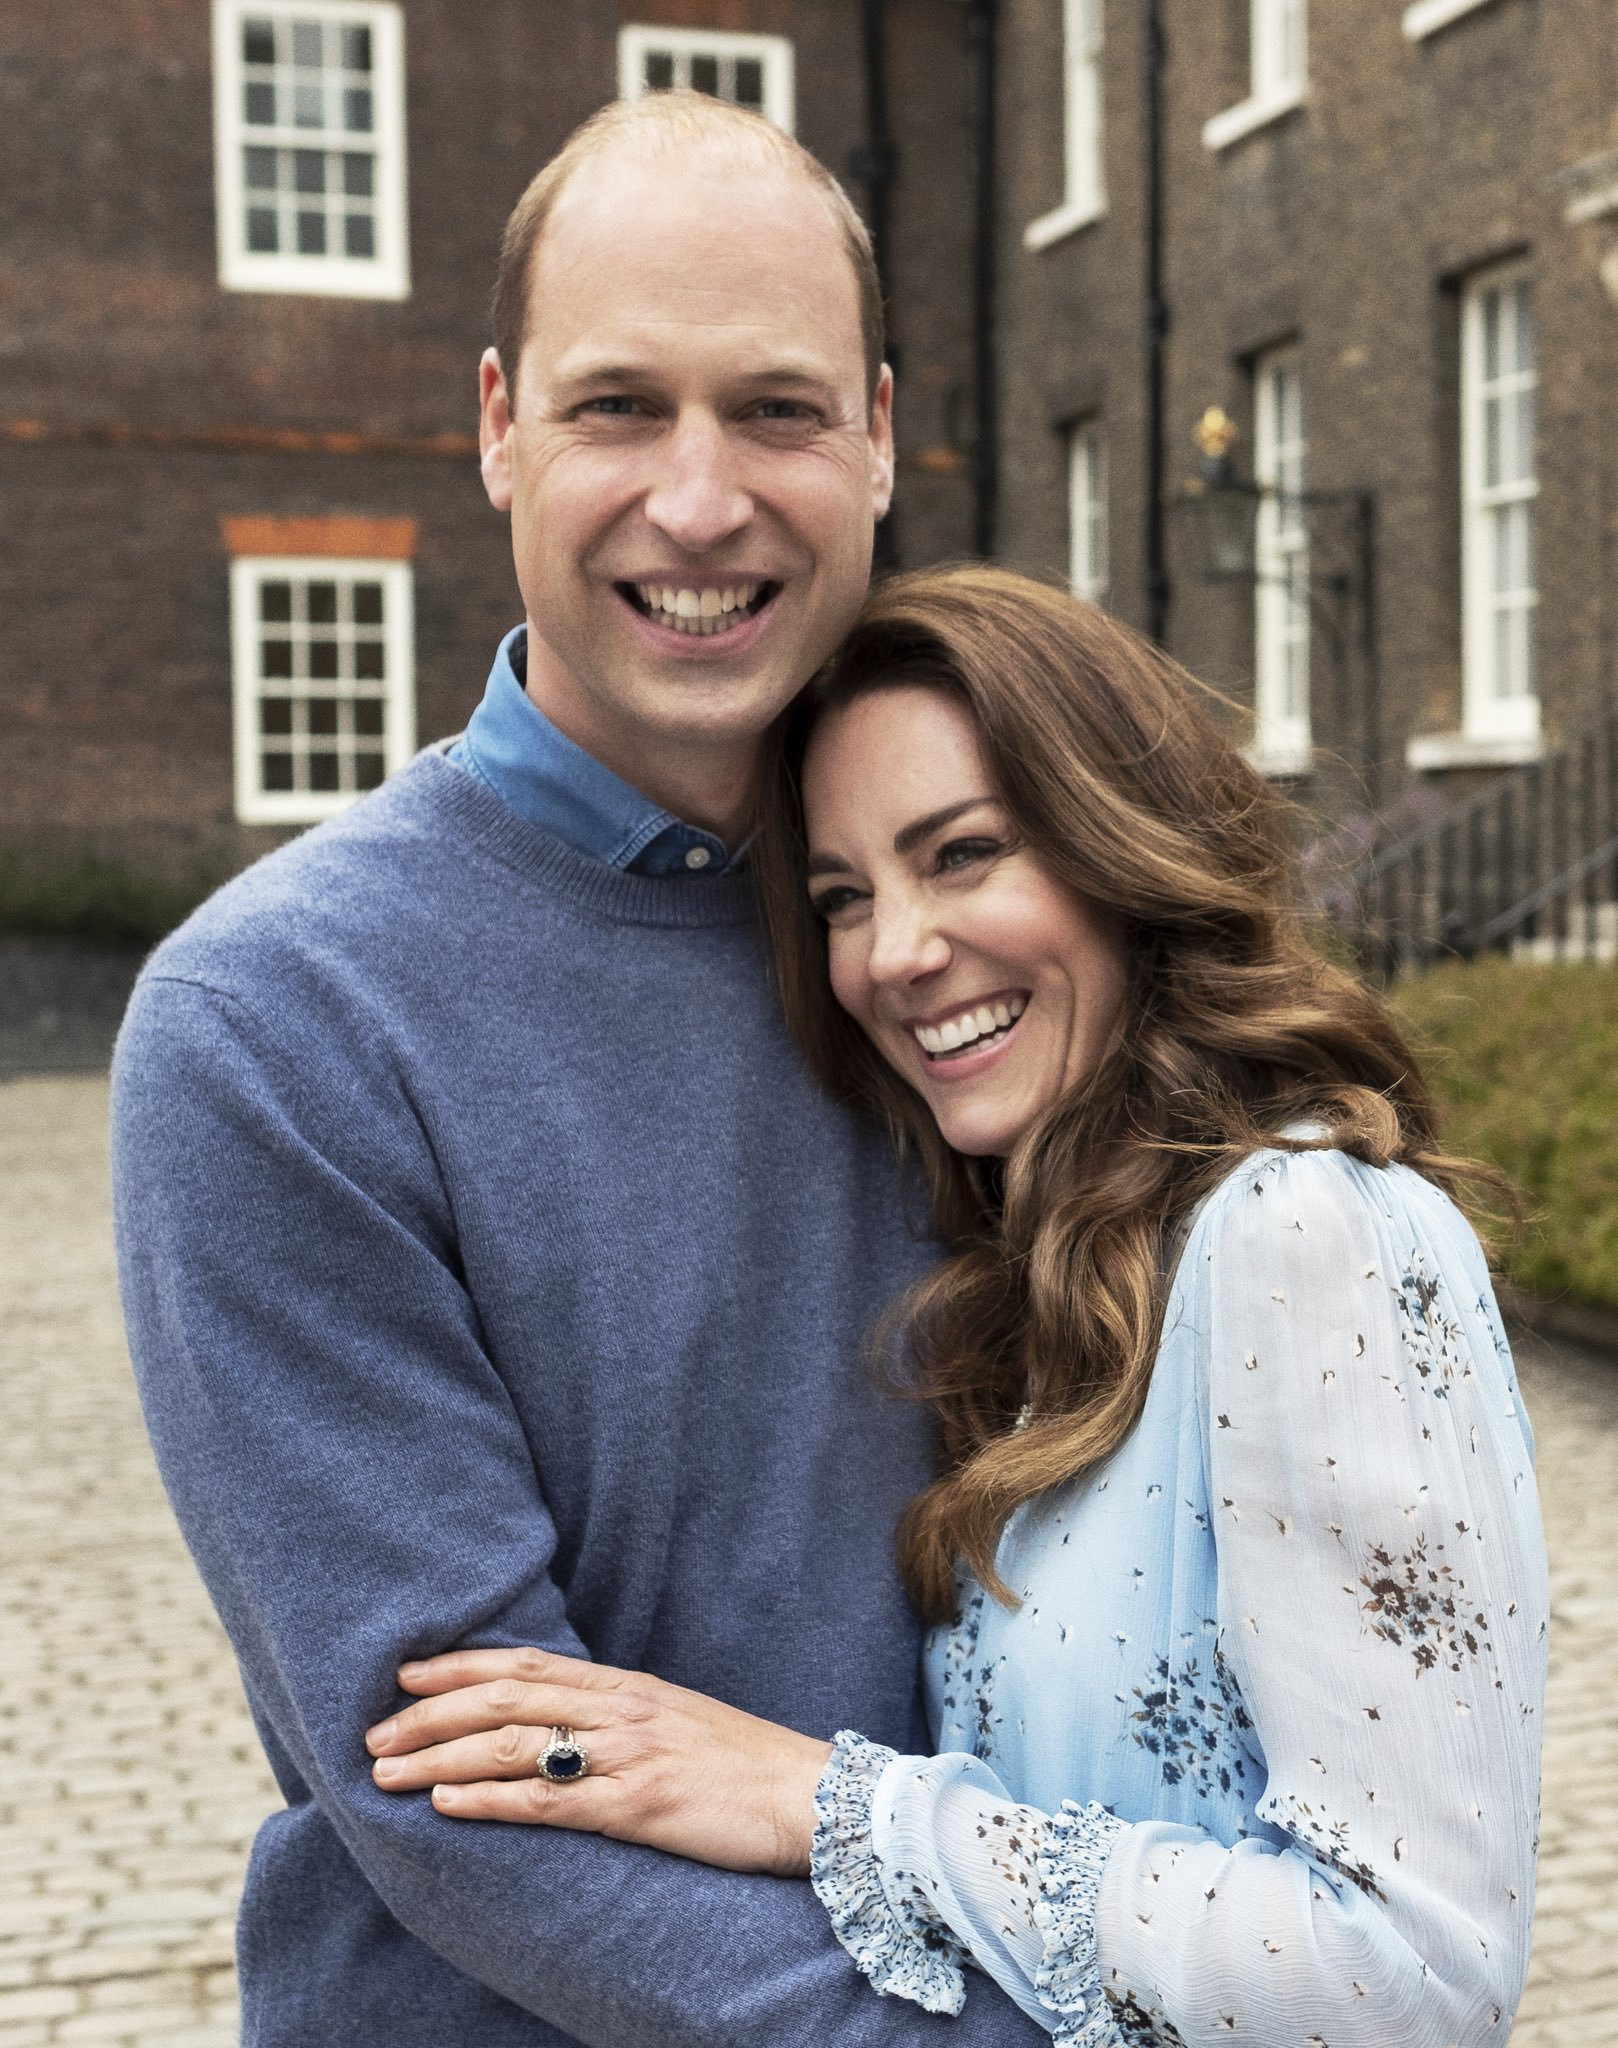 Will and Kate 10th Anniversary Portrait